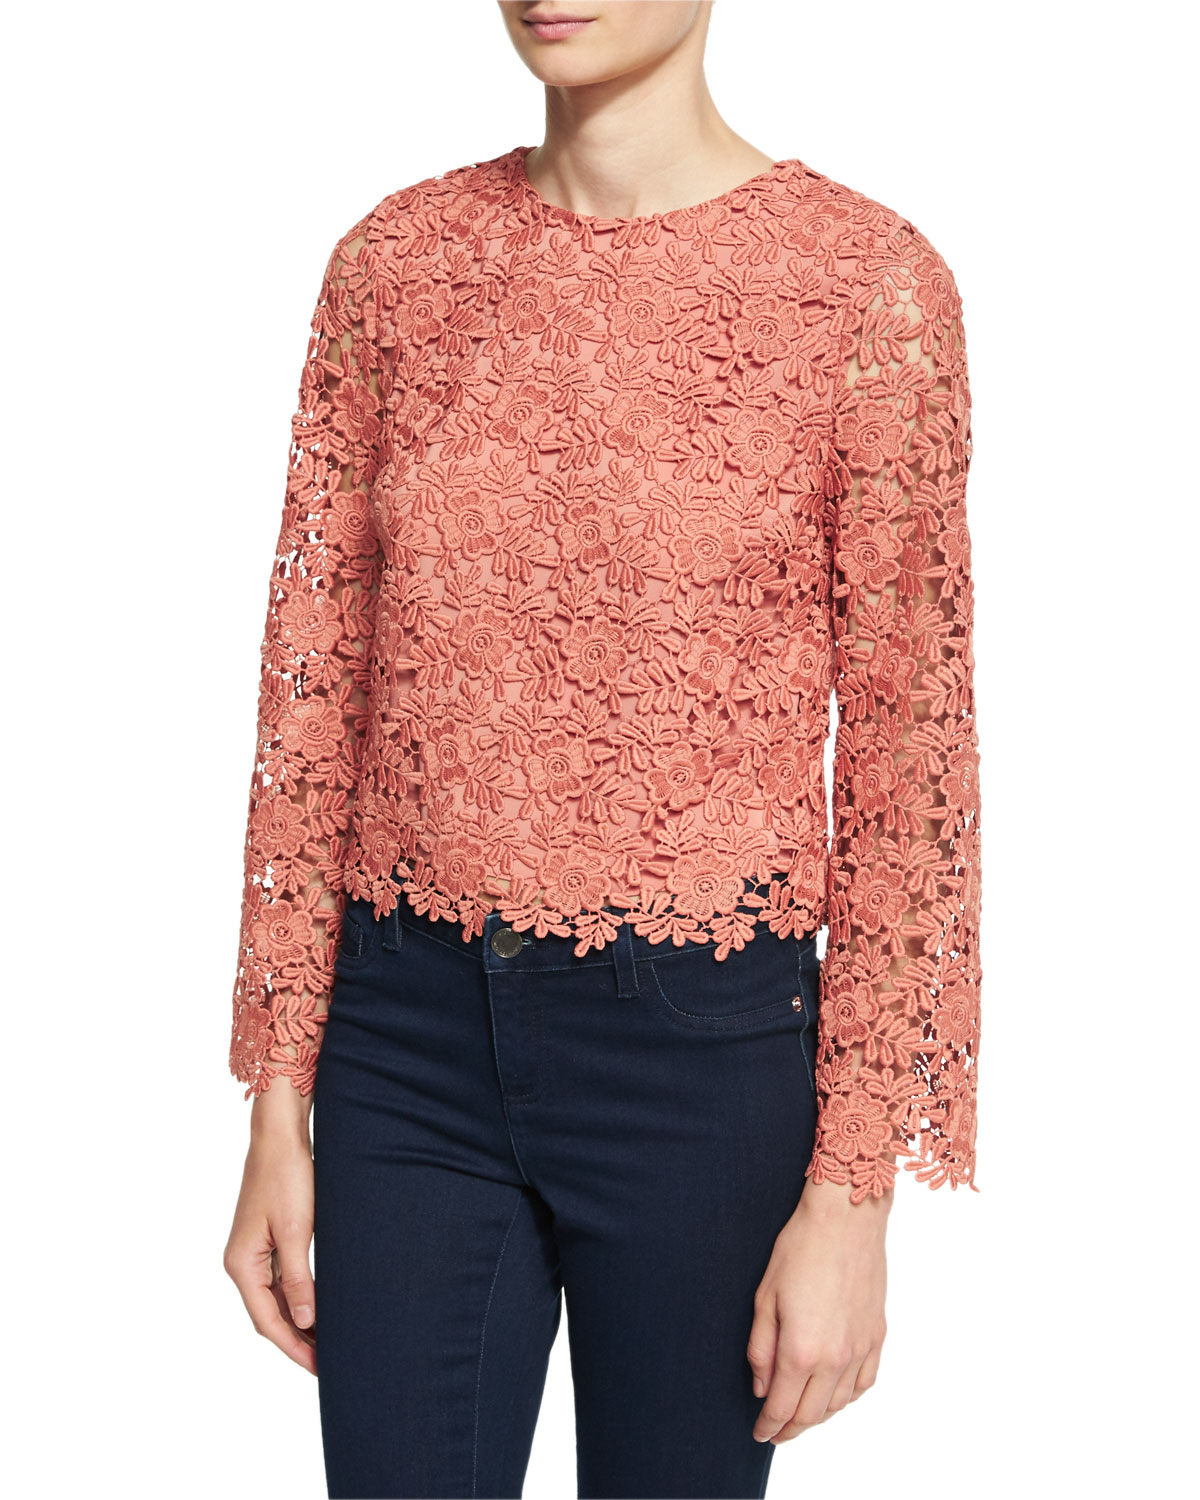 Pasha Long-Sleeve Jewel-Neck Blouse Top, Pink/Orange